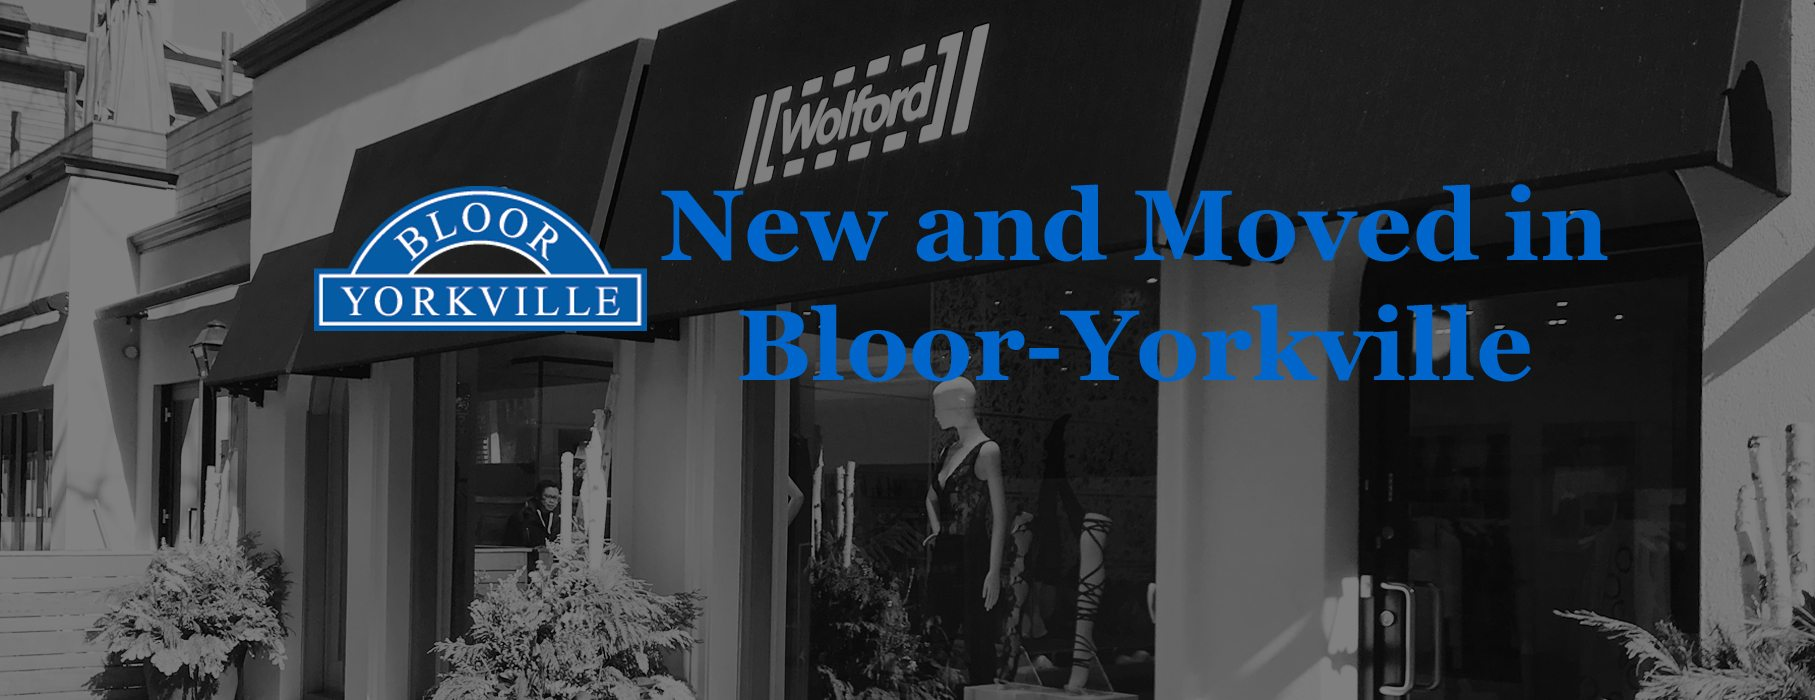 New and Moved in Bloor-Yorkville